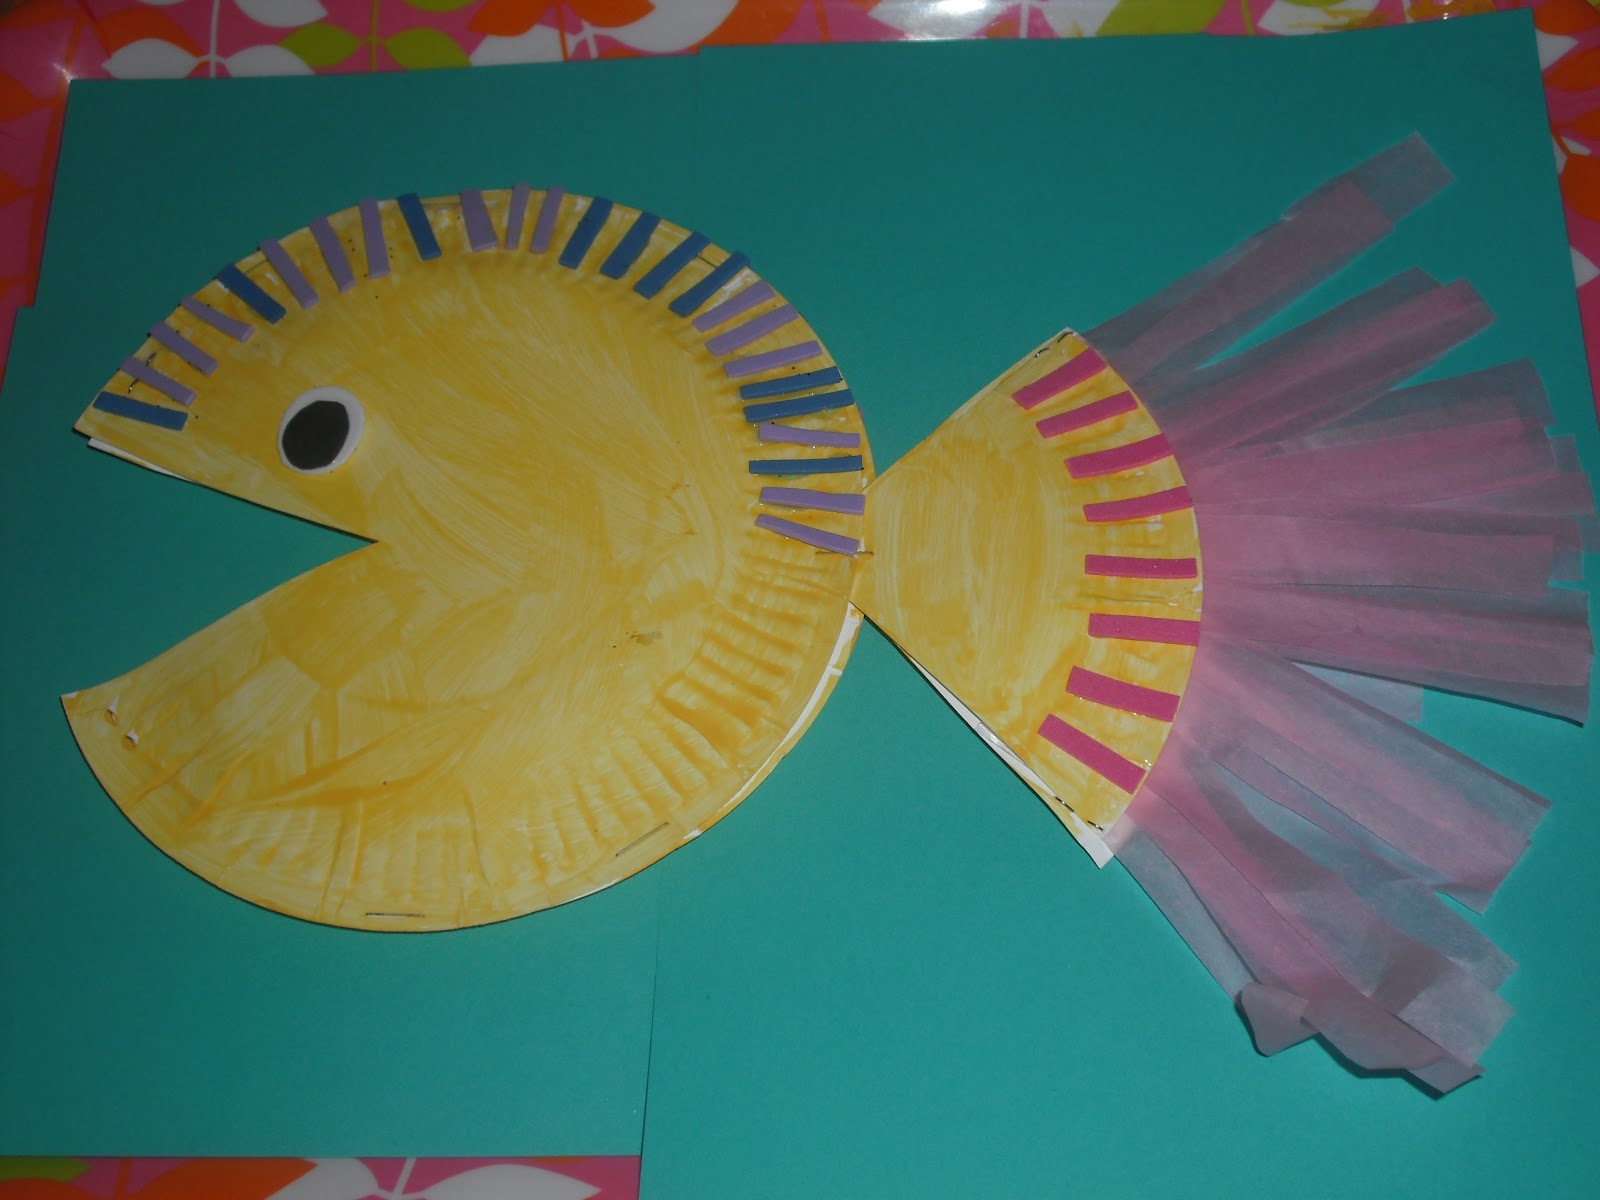 Jamesmay arts and crafts blog learning crafts first shape to start with i think is always the cirle easy to draw and easy to make pictures with the above fish was made from 2 paper plates jeuxipadfo Images